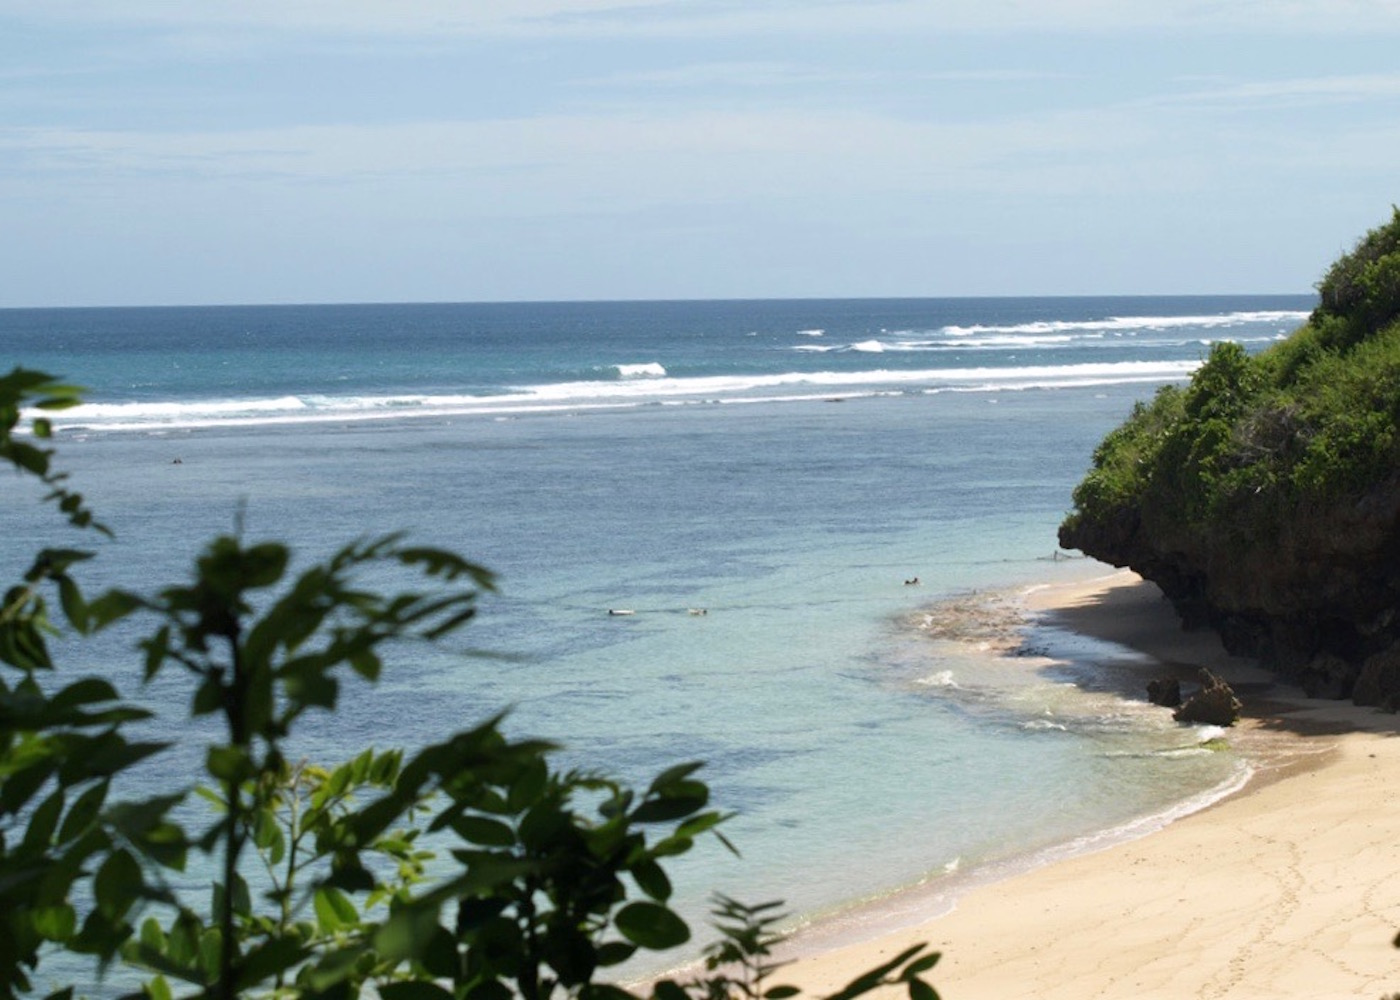 Aerial view of Gunung Paying - one of the best beaches in Bali, Indonesia